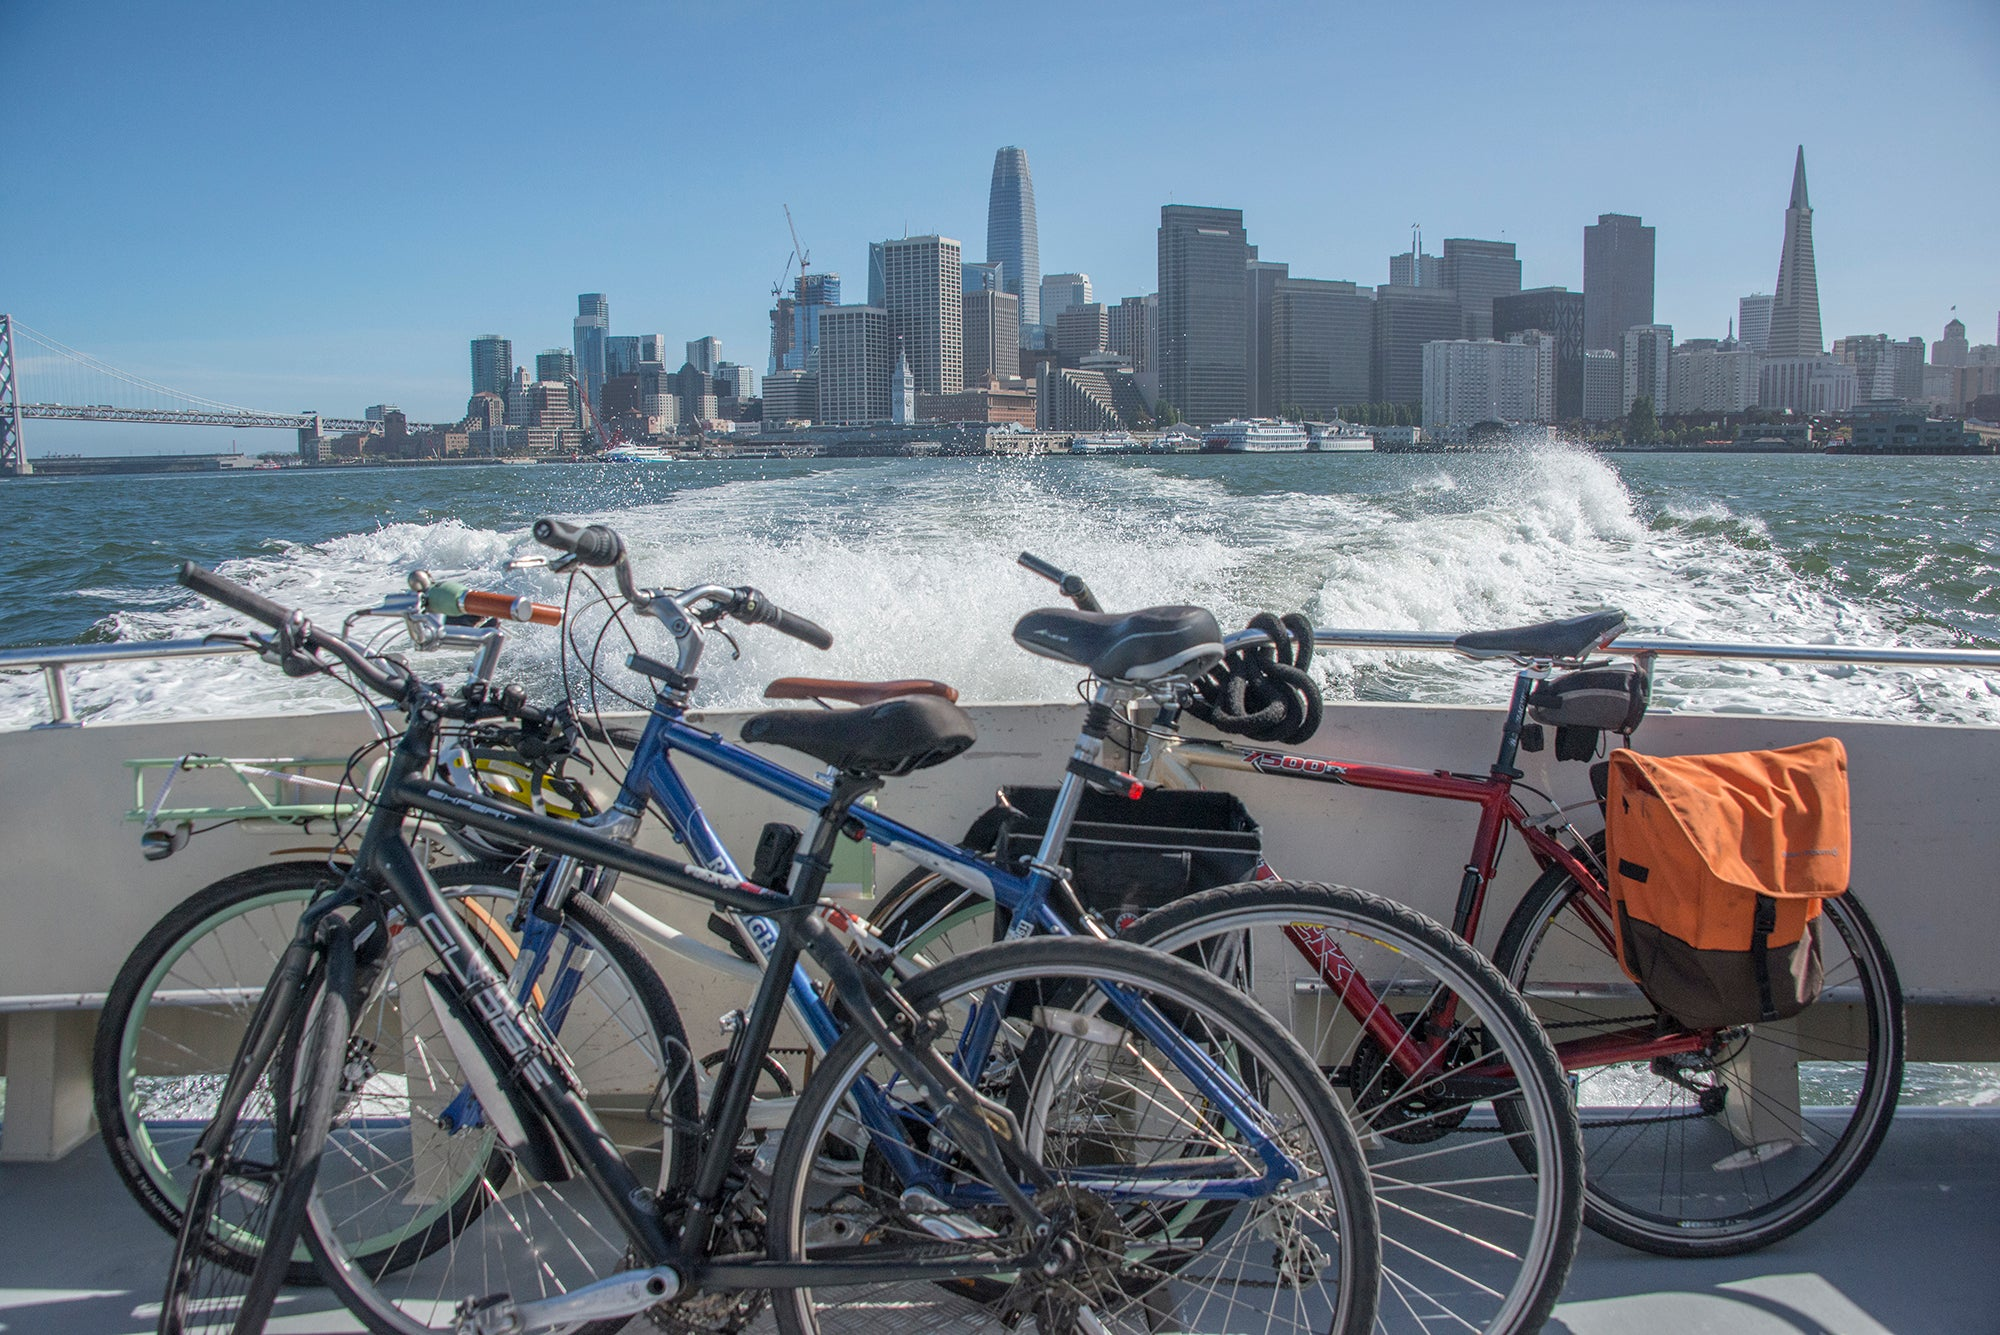 San Francisco skyline from Tideline ferry with bicycles